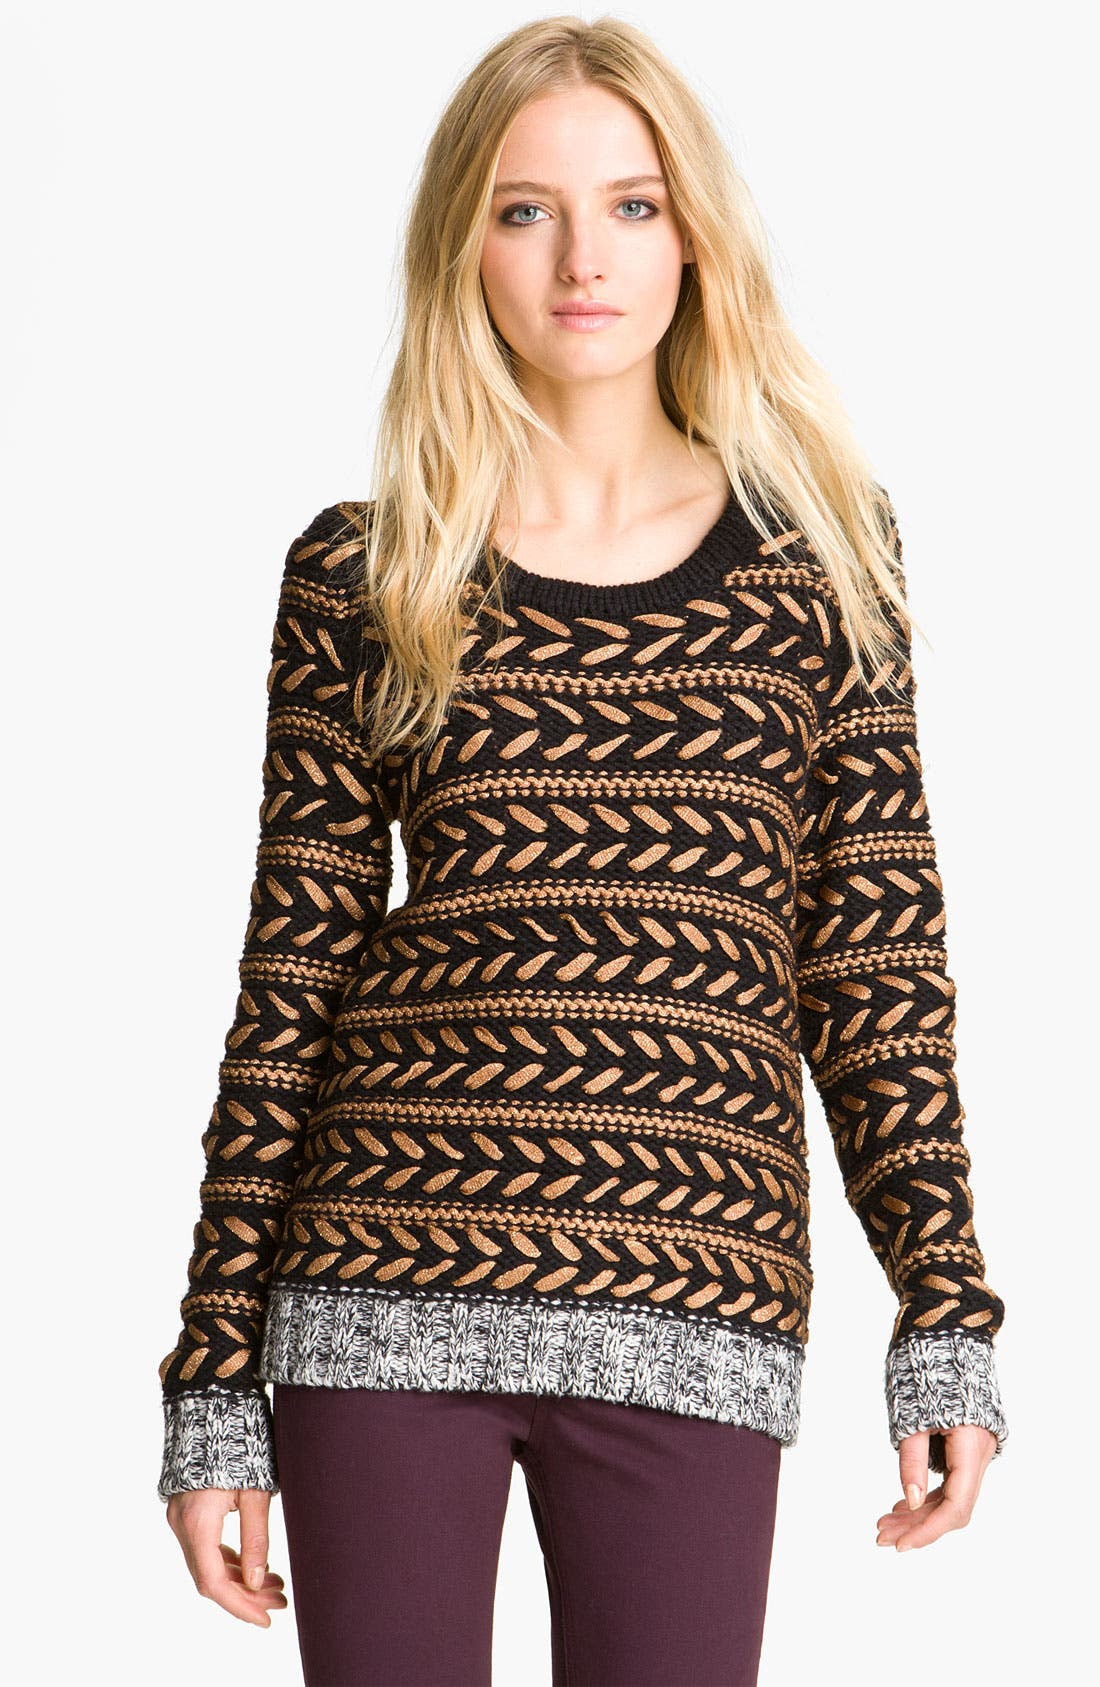 Alternate Image 1 Selected - rag & bone 'Lisbeth' Contrast Crewneck Sweater